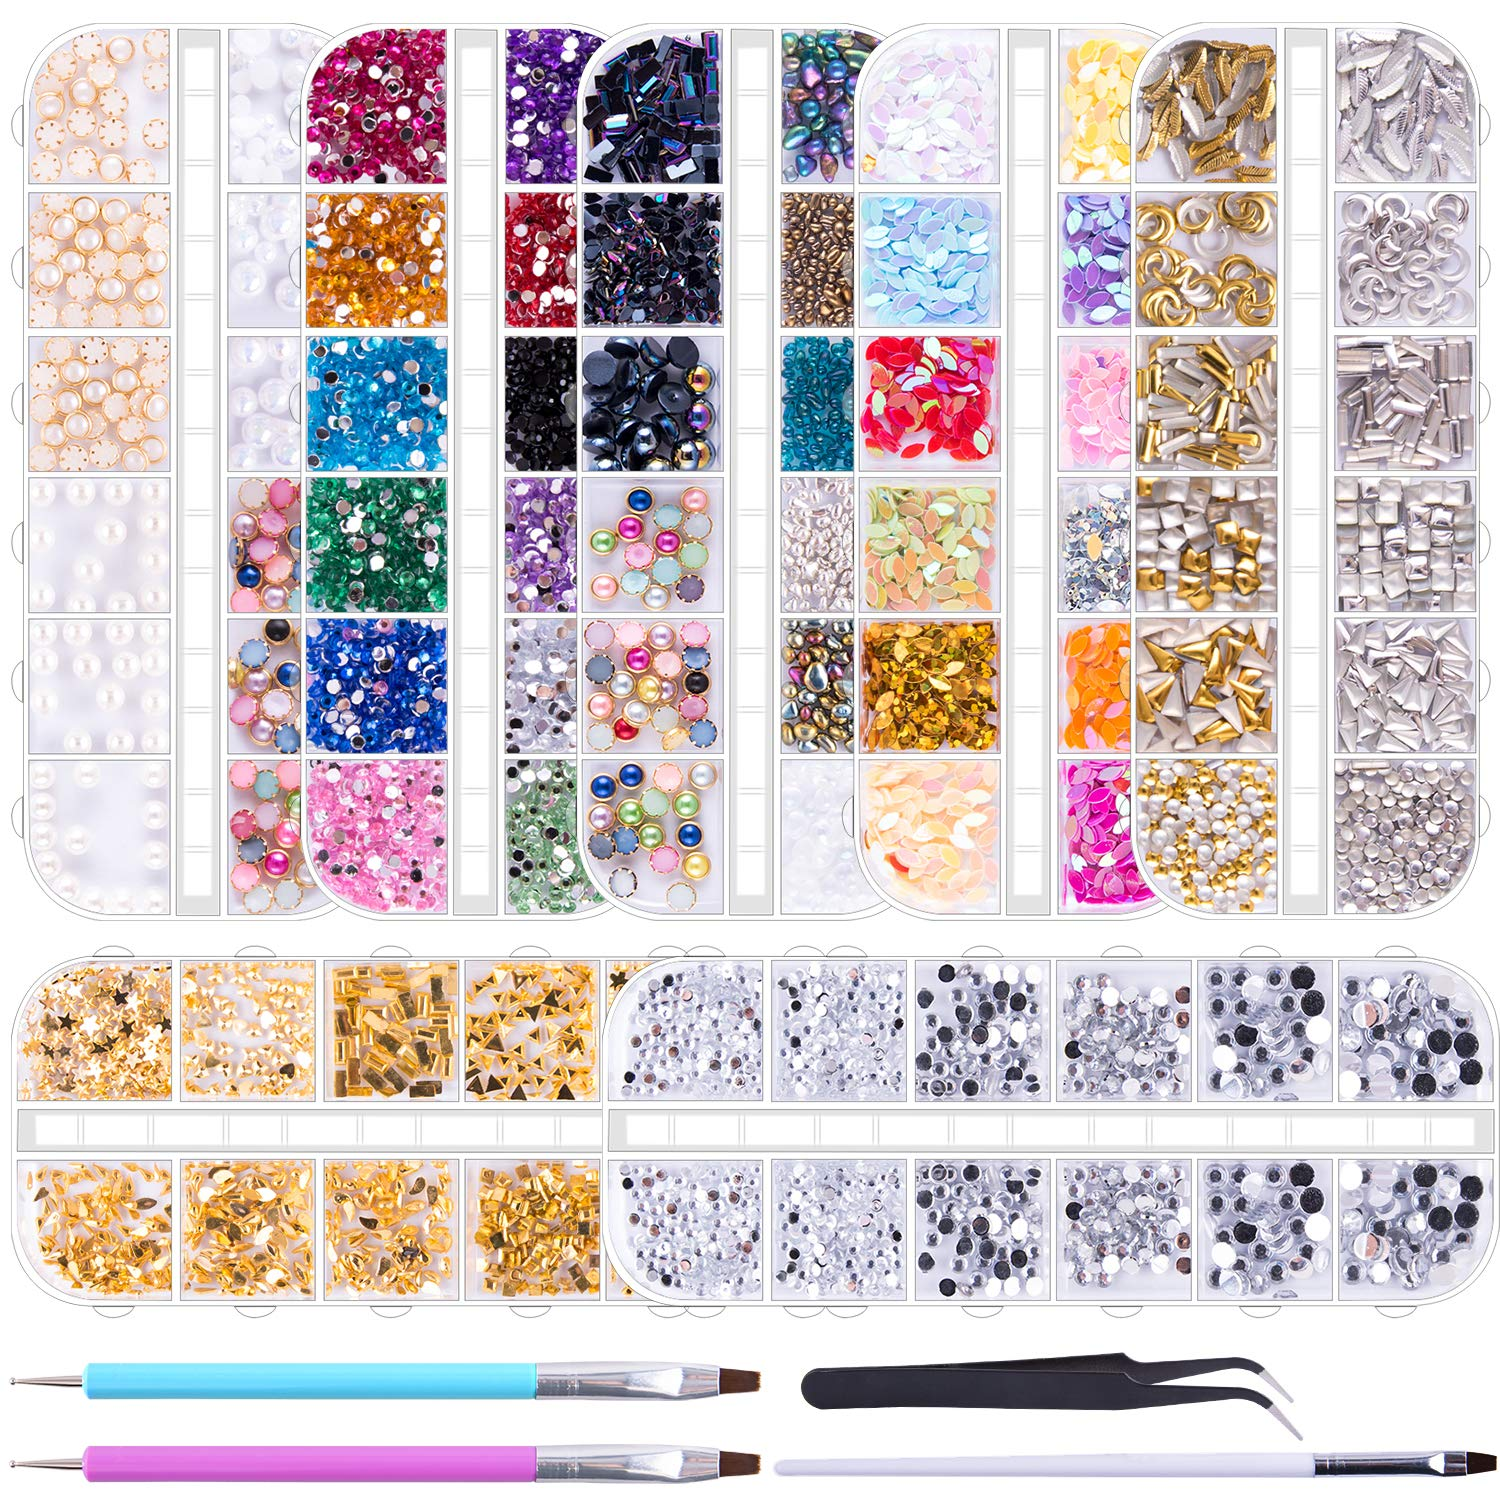 Review for Duufin 10014 Pcs Nail Art Rhinestones Nail Crystal Gems Nail Jewels Nail Diamonds with 1 Pc Pick Up Tweezers 1 Pc Brush Pen and 2 Pcs Wax Pens for Nail Art Supplies